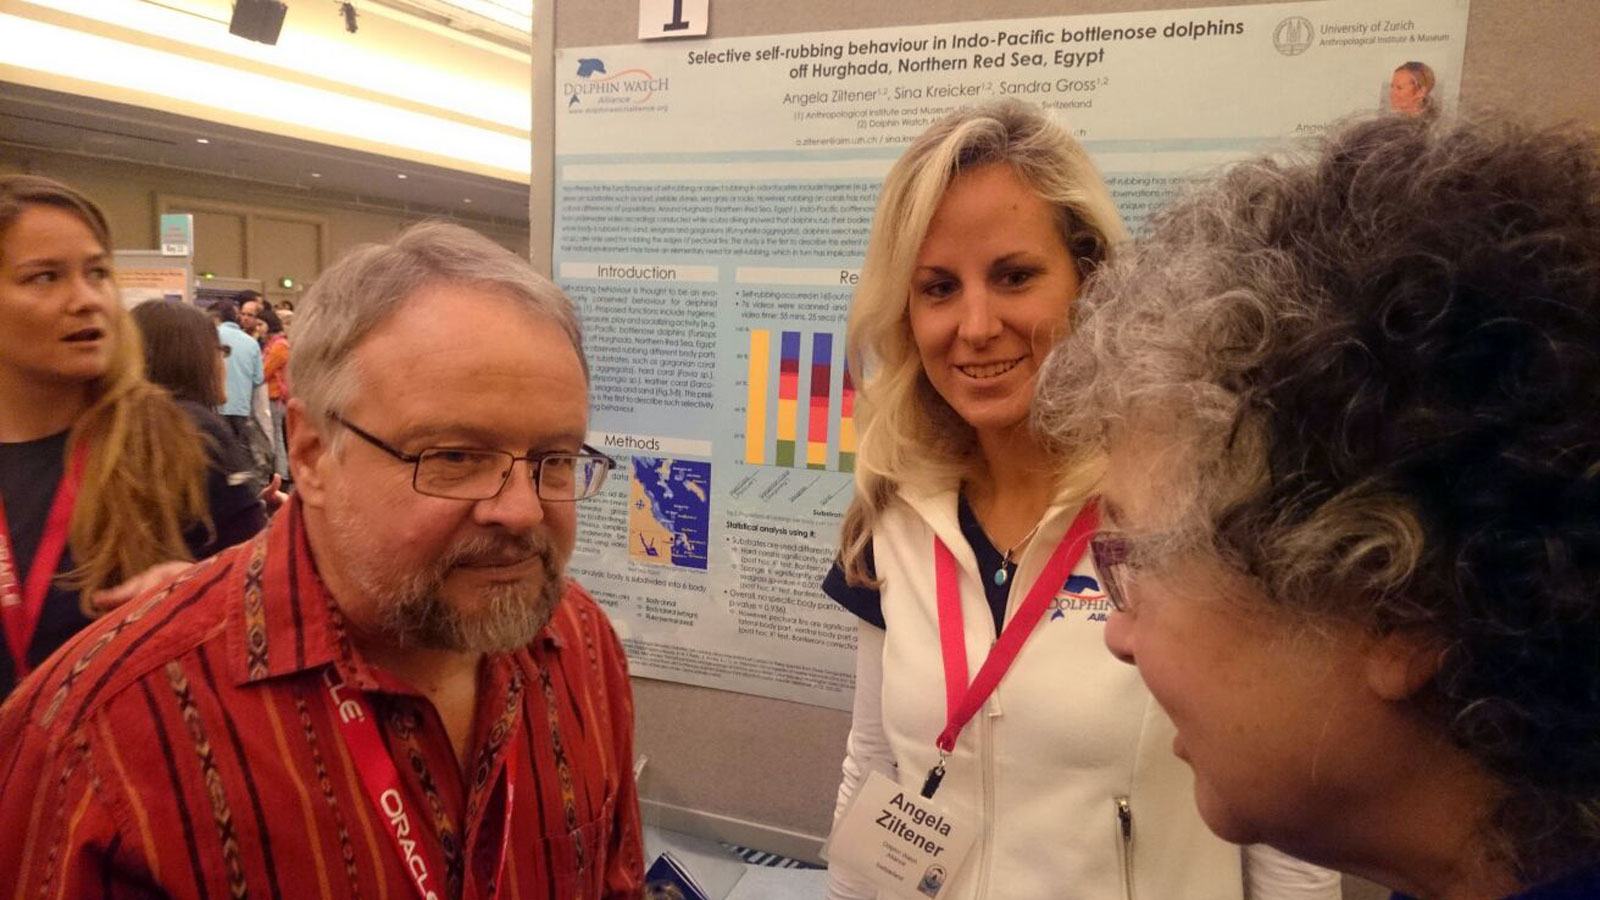 Angela Ziltener an der 21st Biennial Conference on the Biology of Marine Mammals in San Francisco